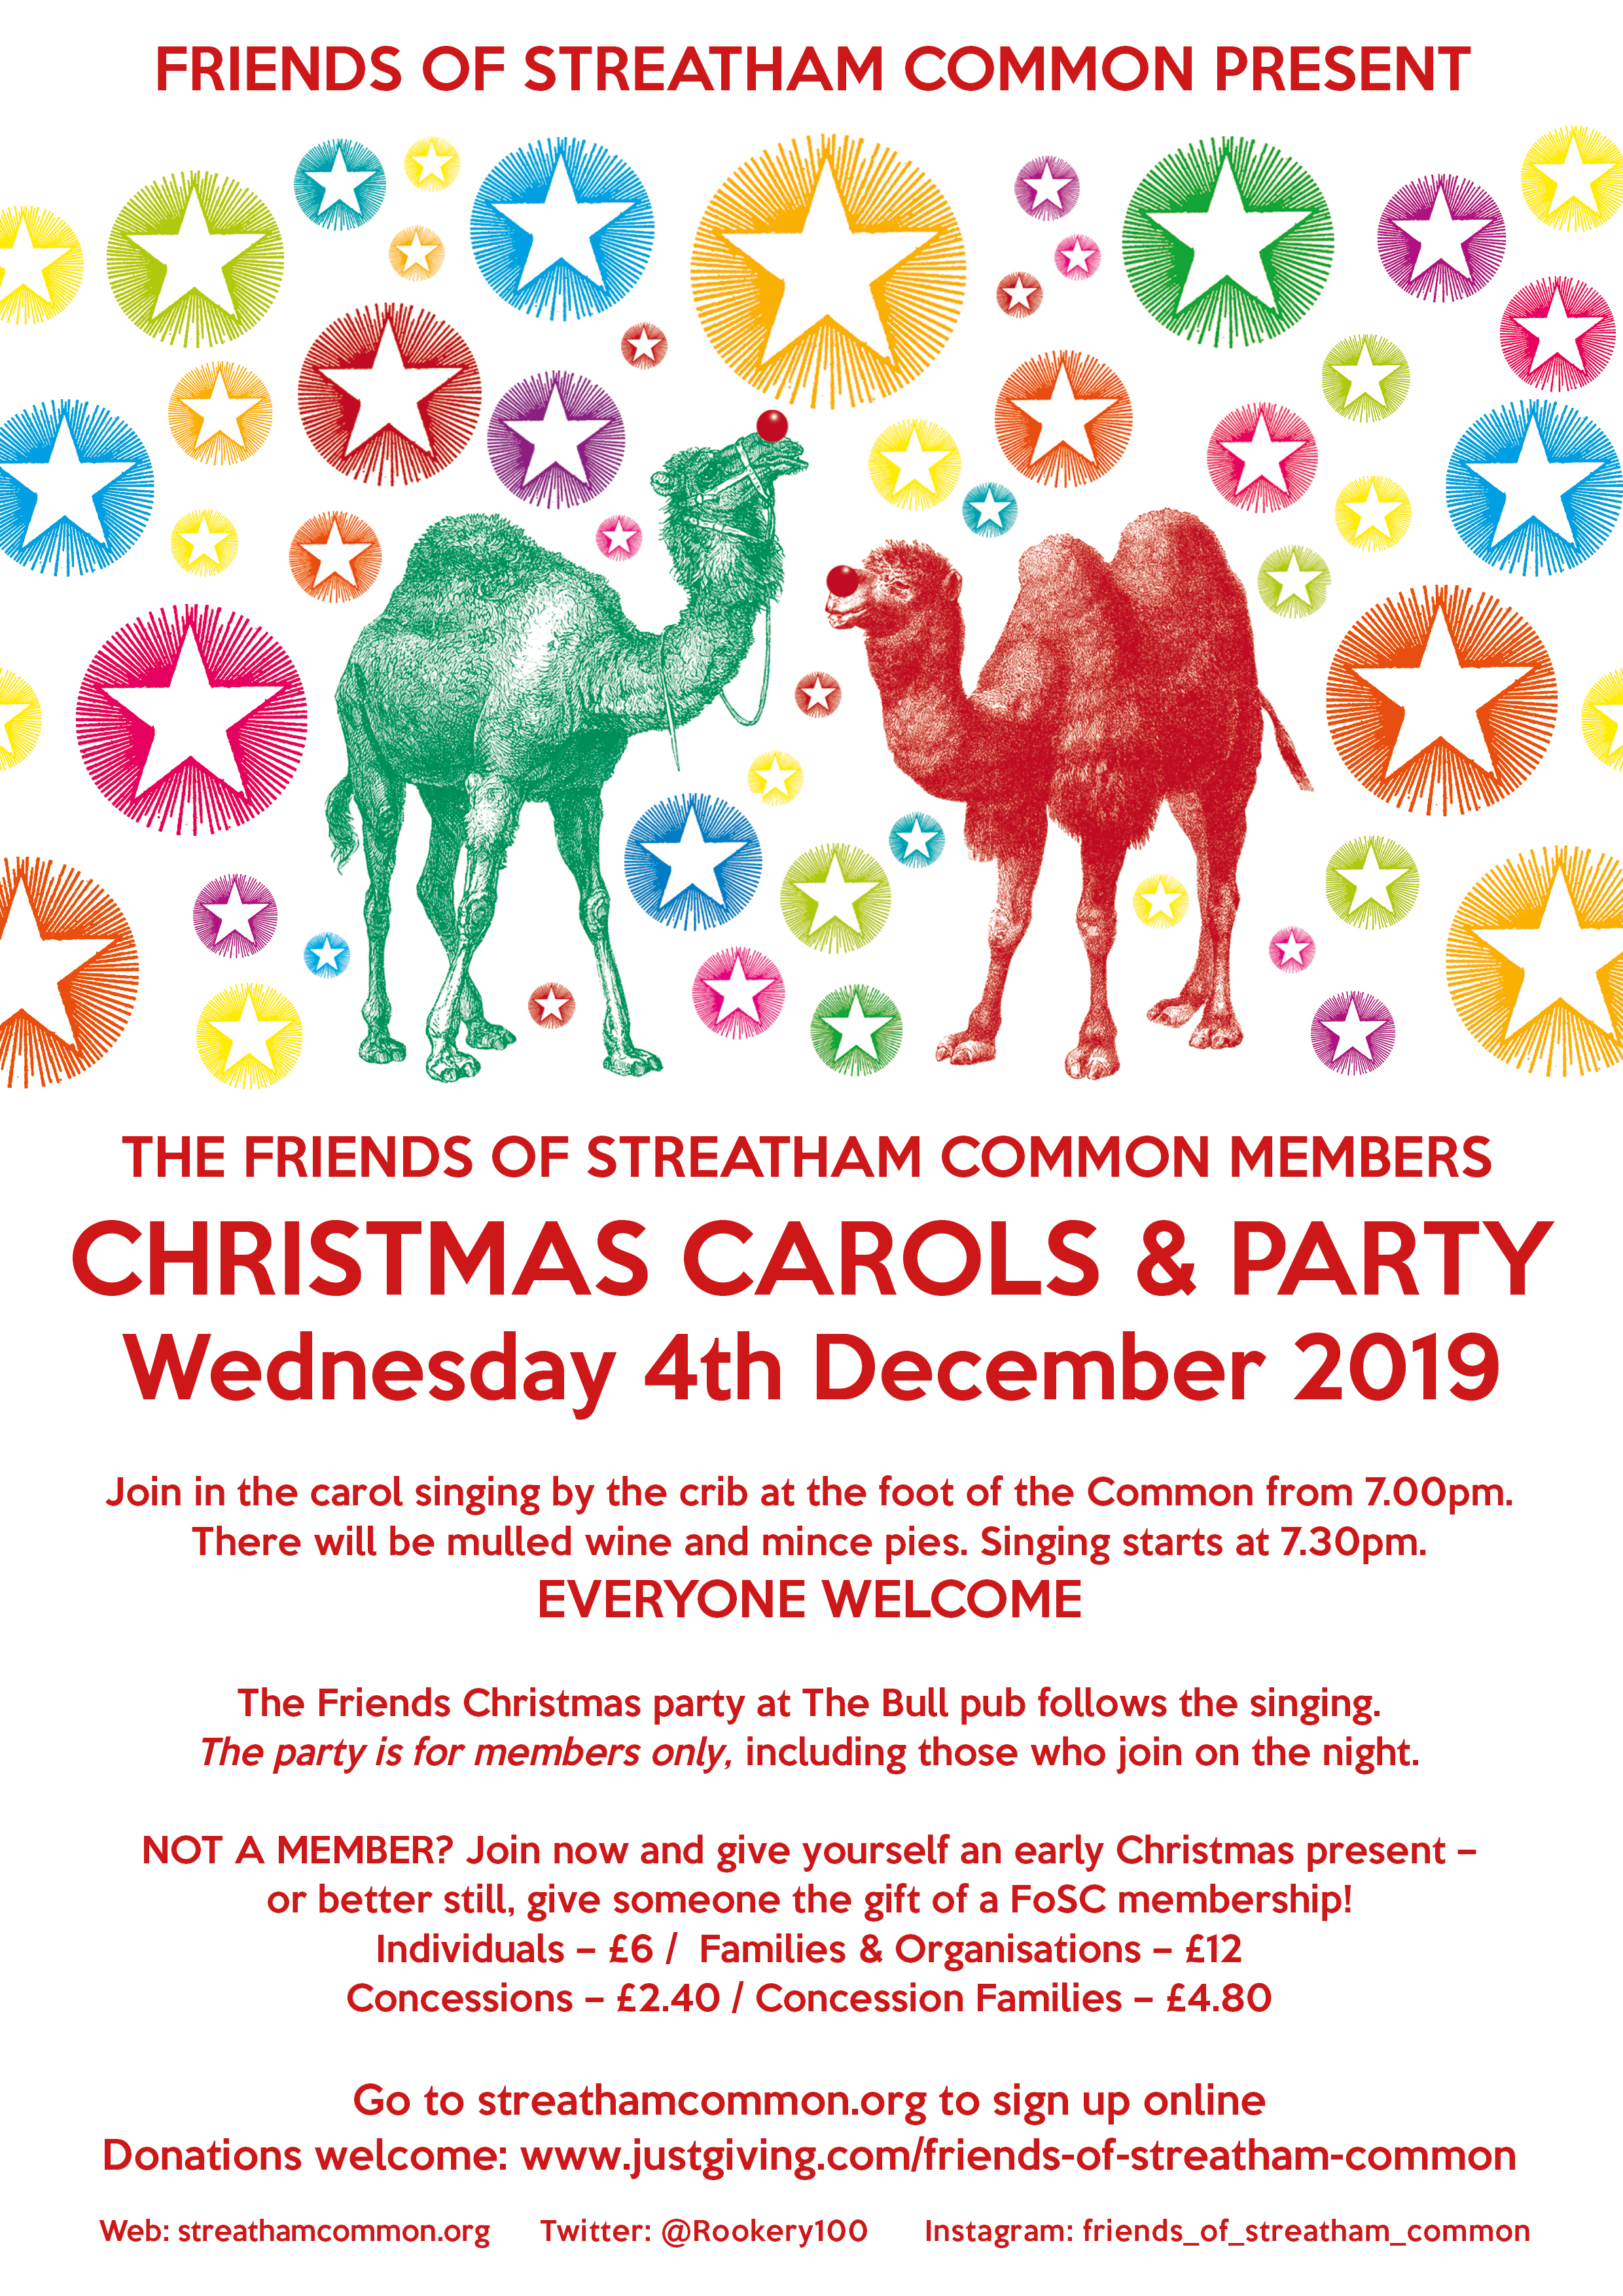 Christmas Carols Fosc Party 4th December 2019 Friends Of Streatham Common